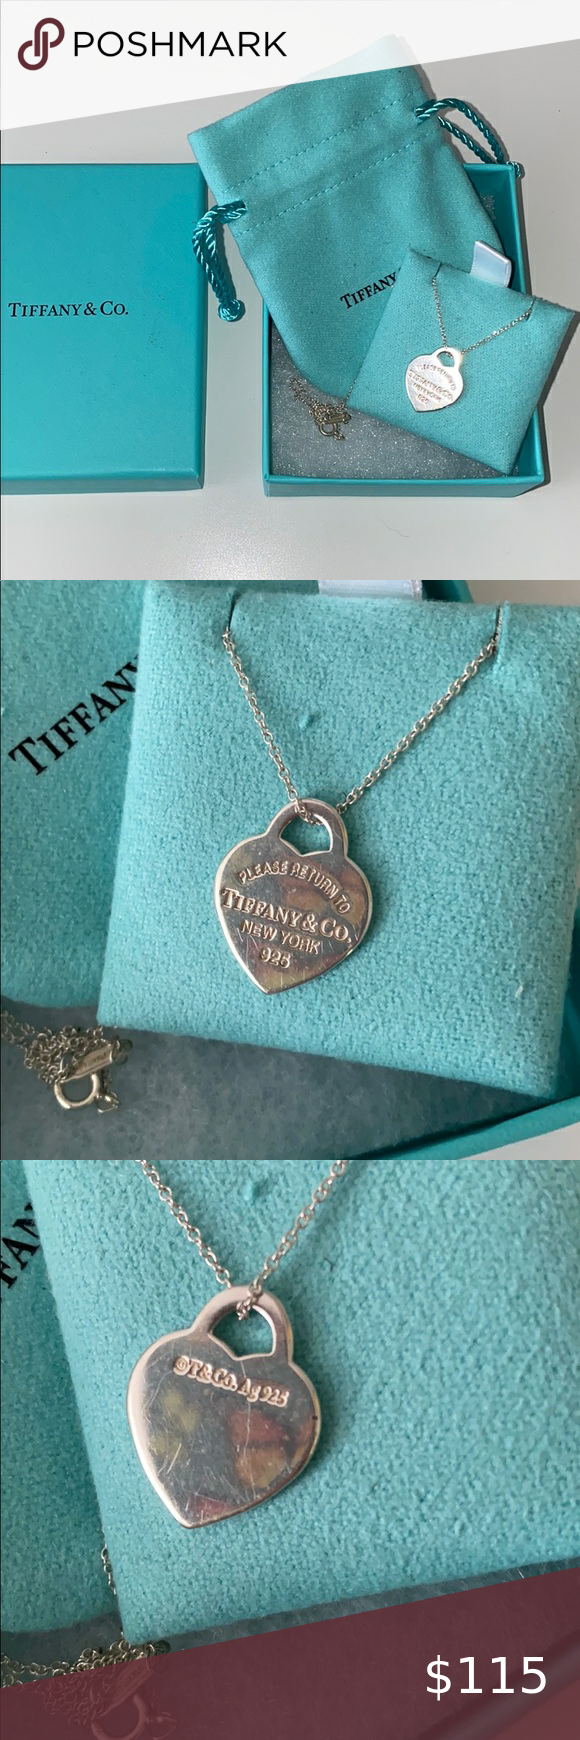 11+ Does tiffanys clean your jewelry for free viral